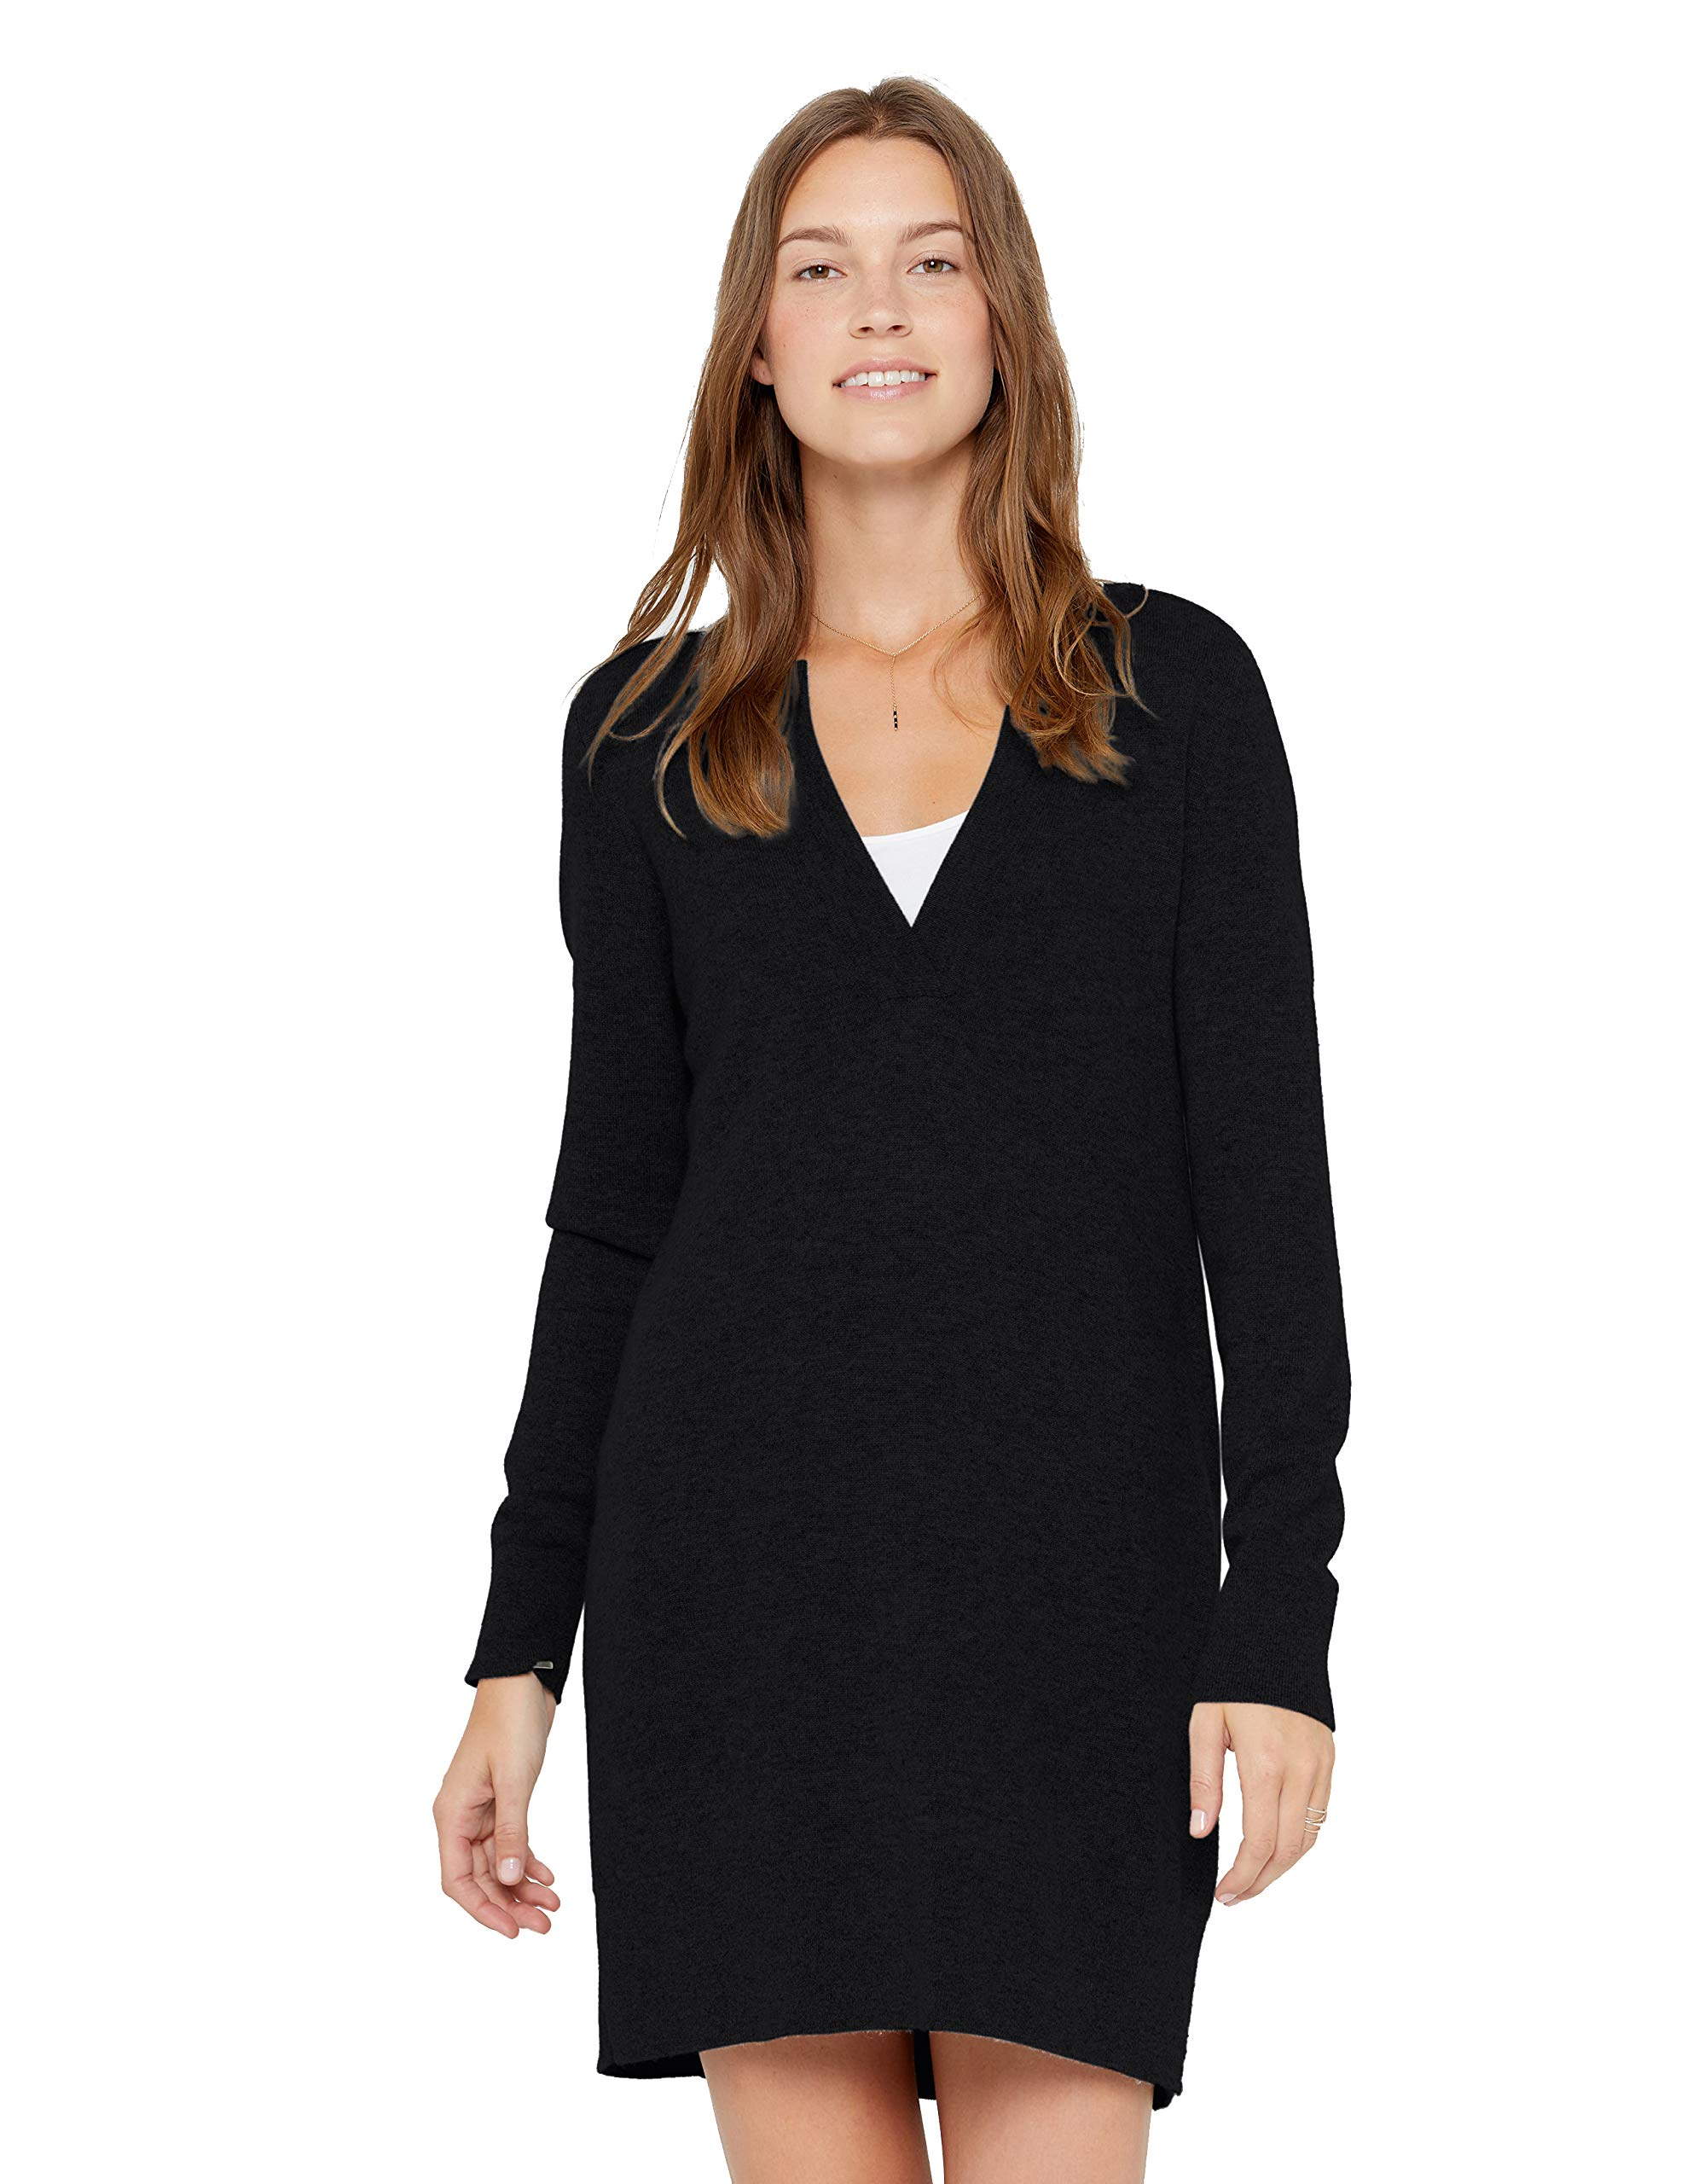 State Cashmere V-Neck Sweater Dress 100% Pure Cashmere Long Sleeve Pullover Tunic for Women (Medium, Black)